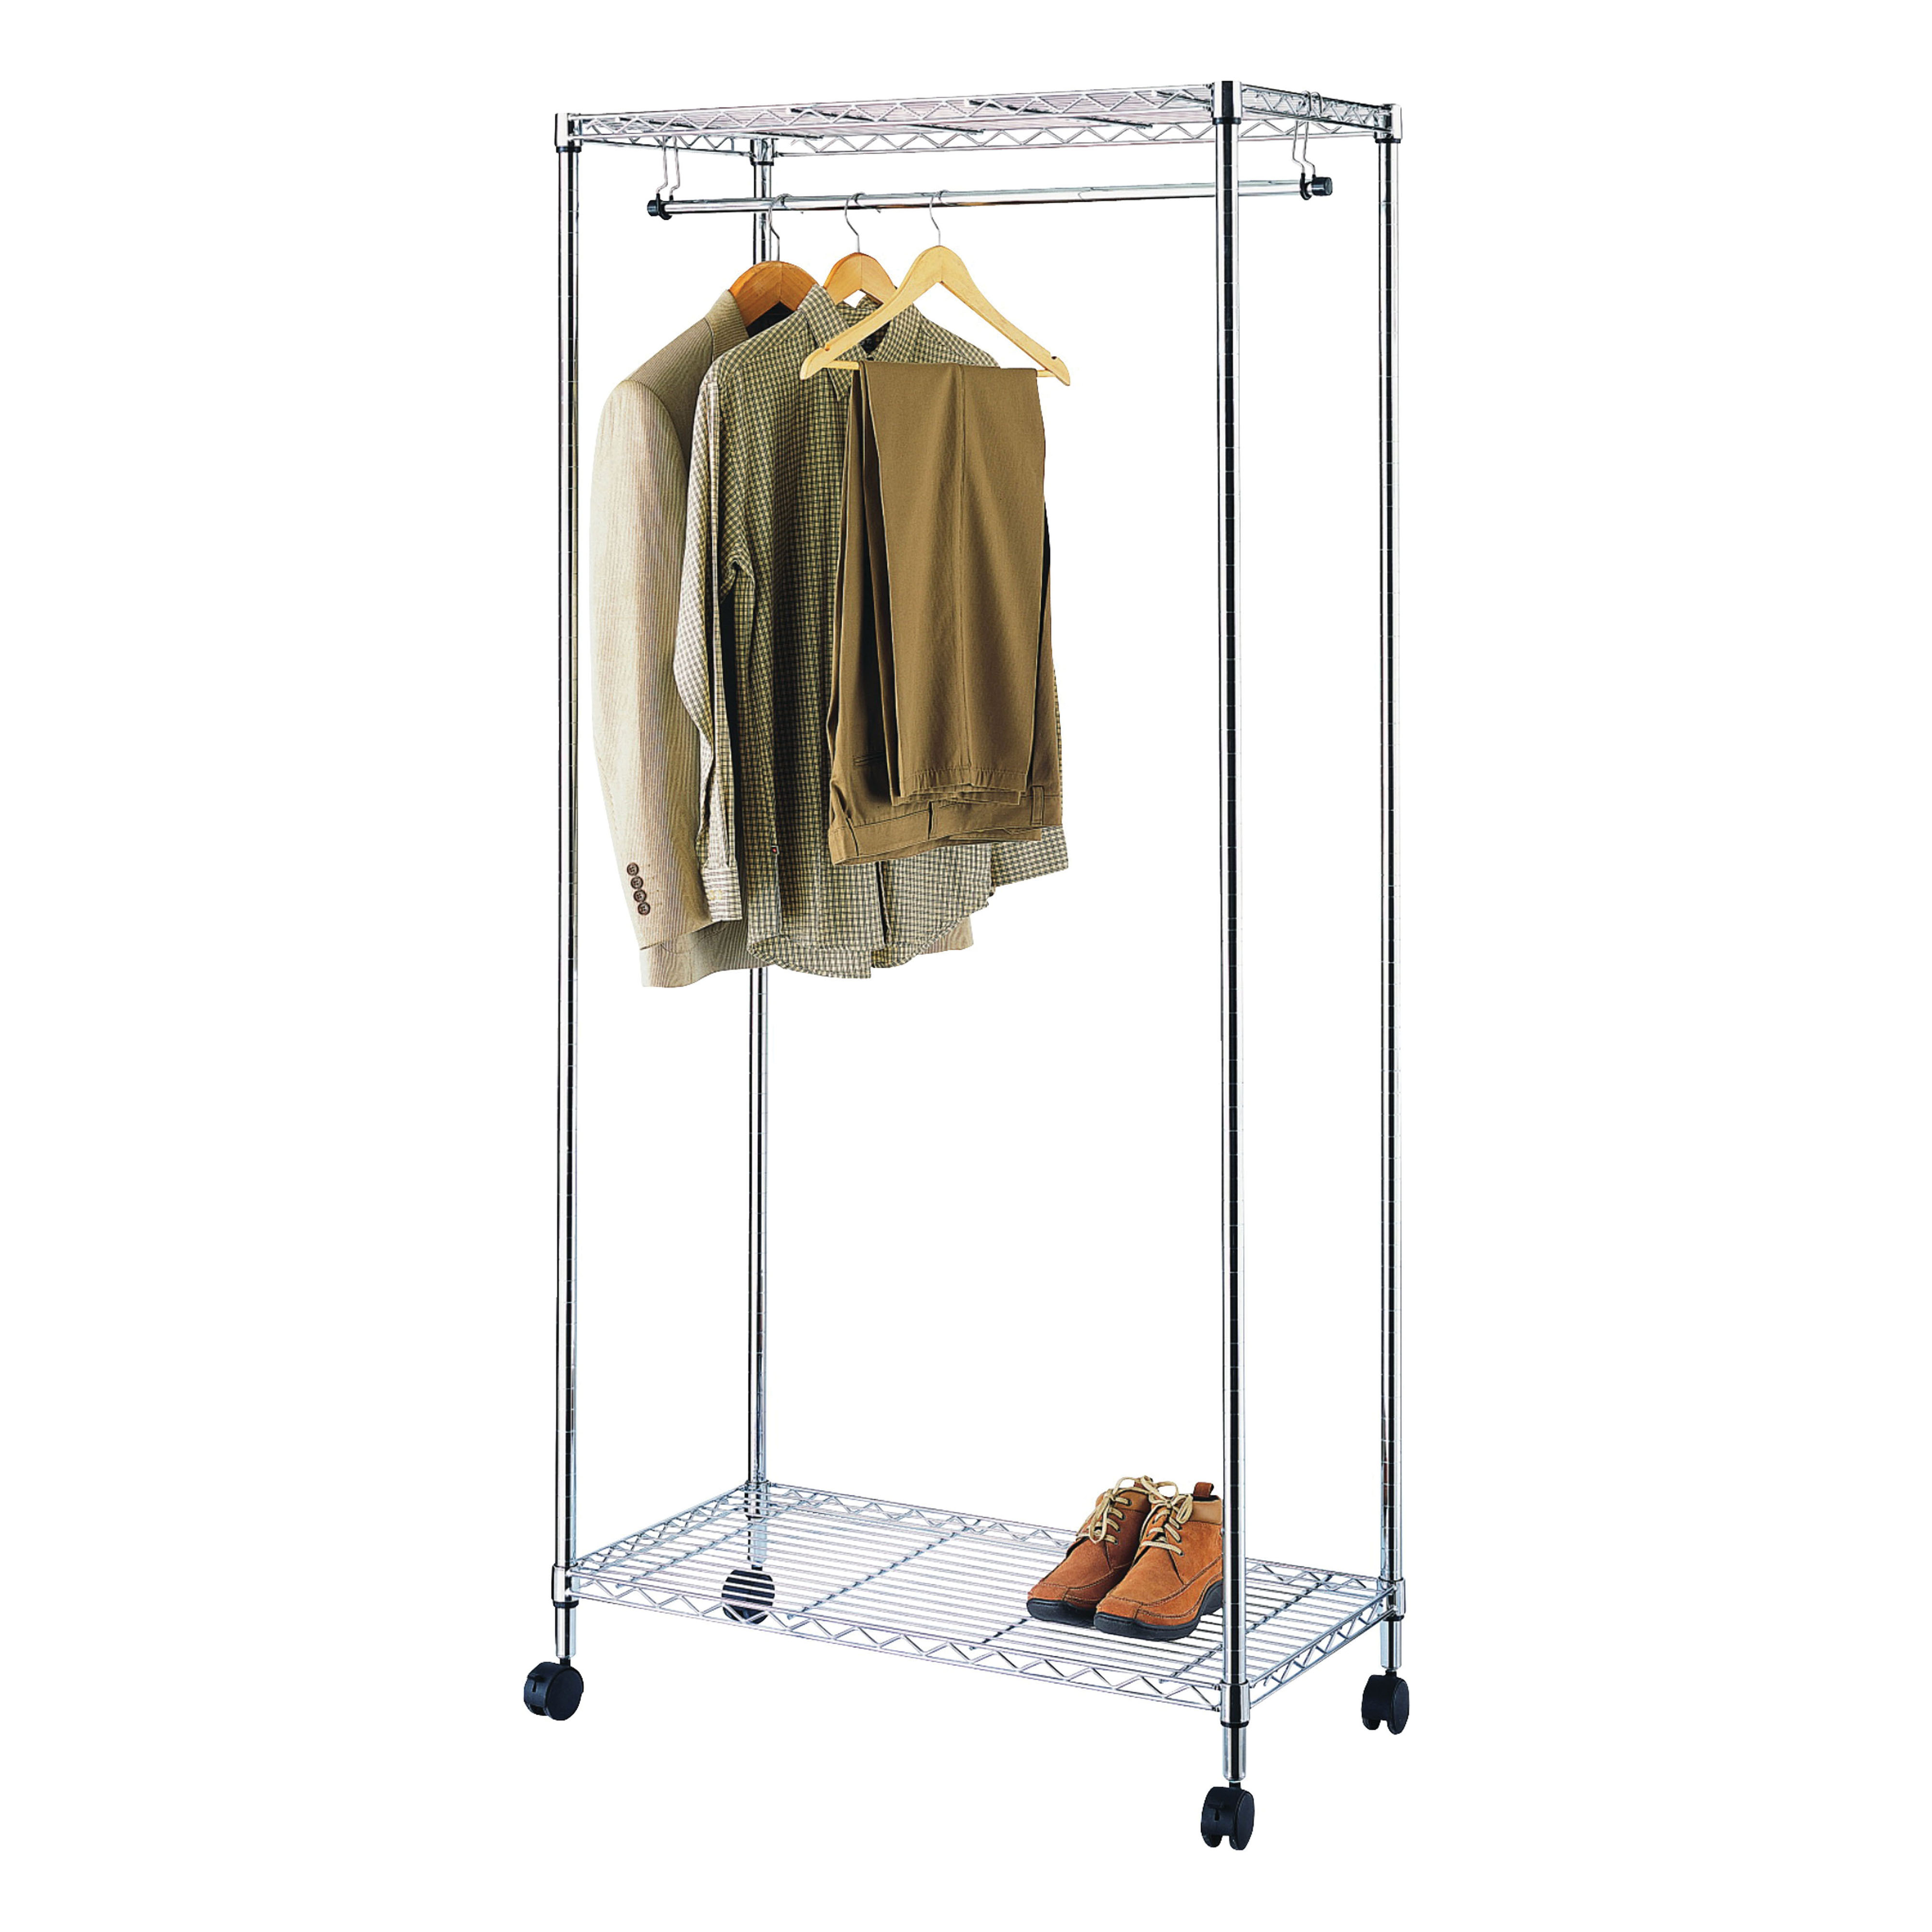 Picture of Simple Spaces SS-8058-90TCH-3L Garment Rack with Wheel, 30 to 50 Garments Capacity, 35-3/4 in W, 75 in H, Steel